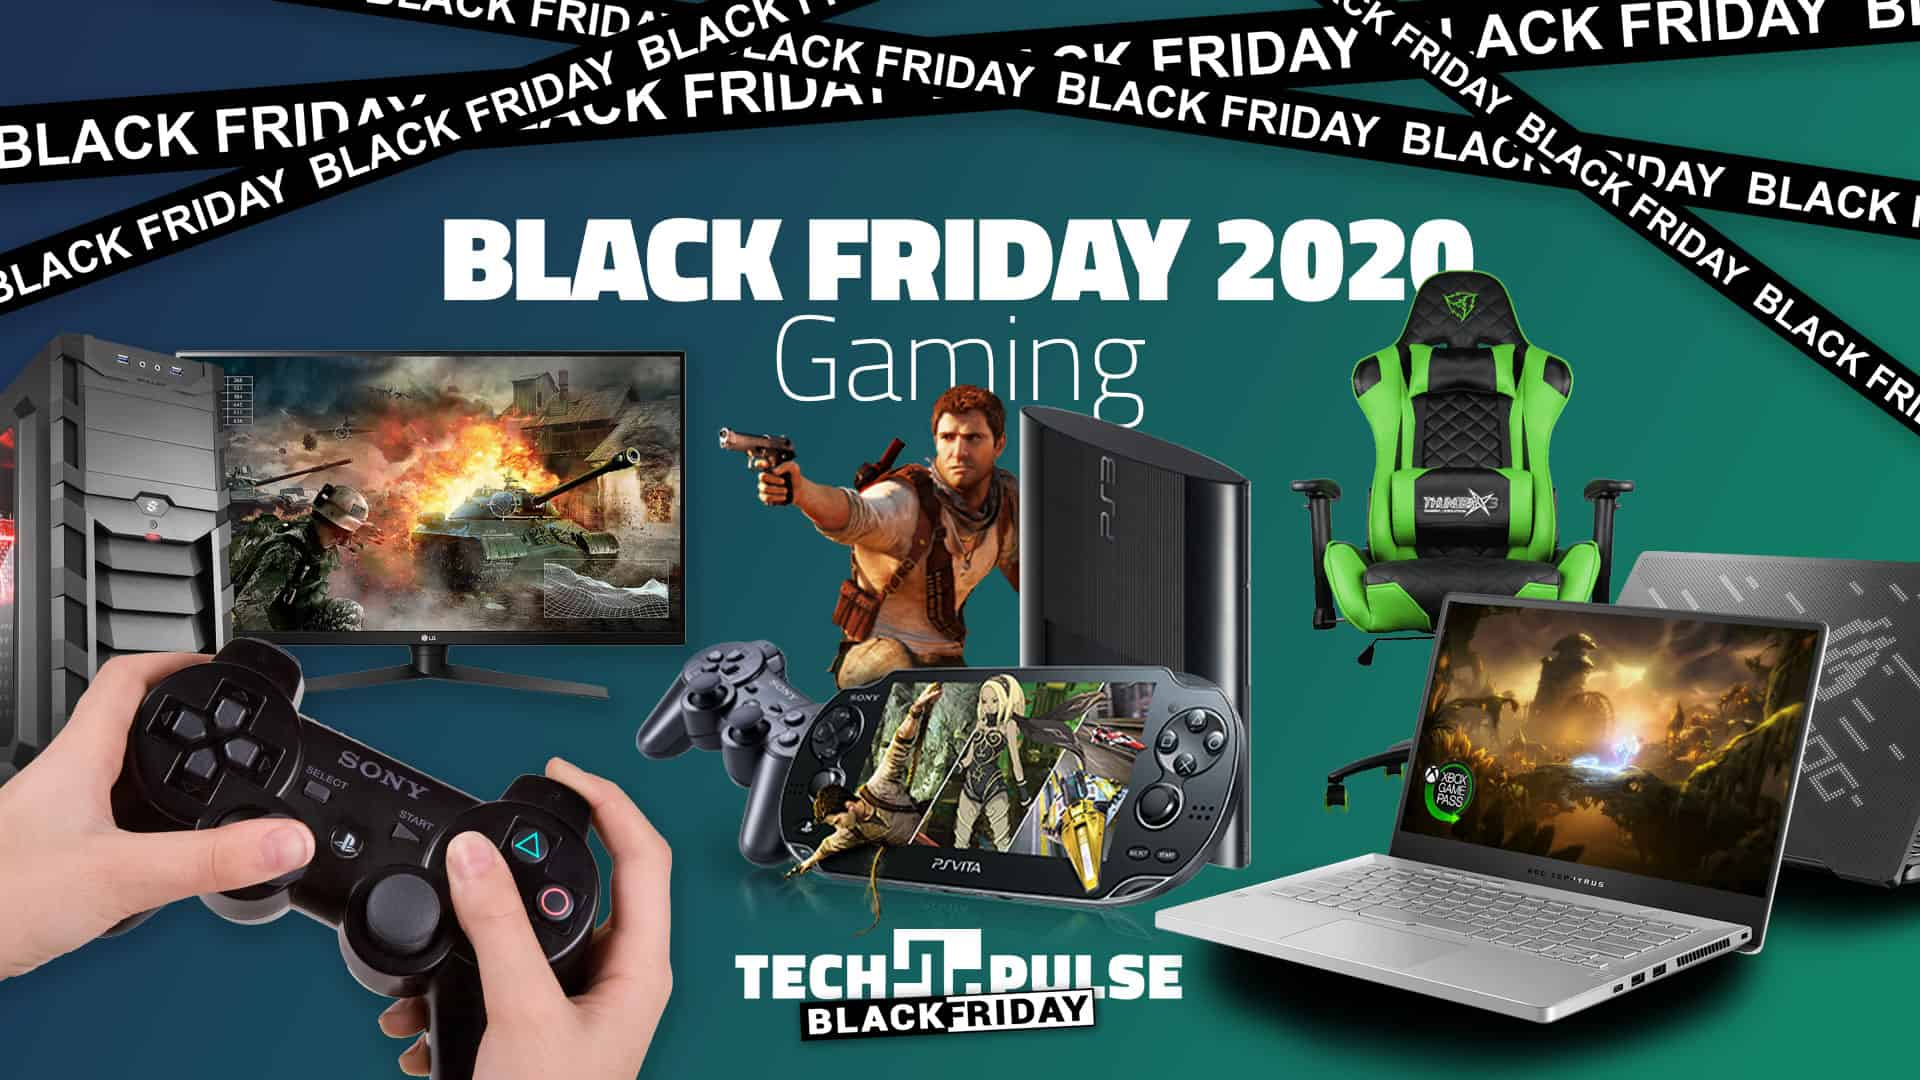 Black Friday 2020: Gaming